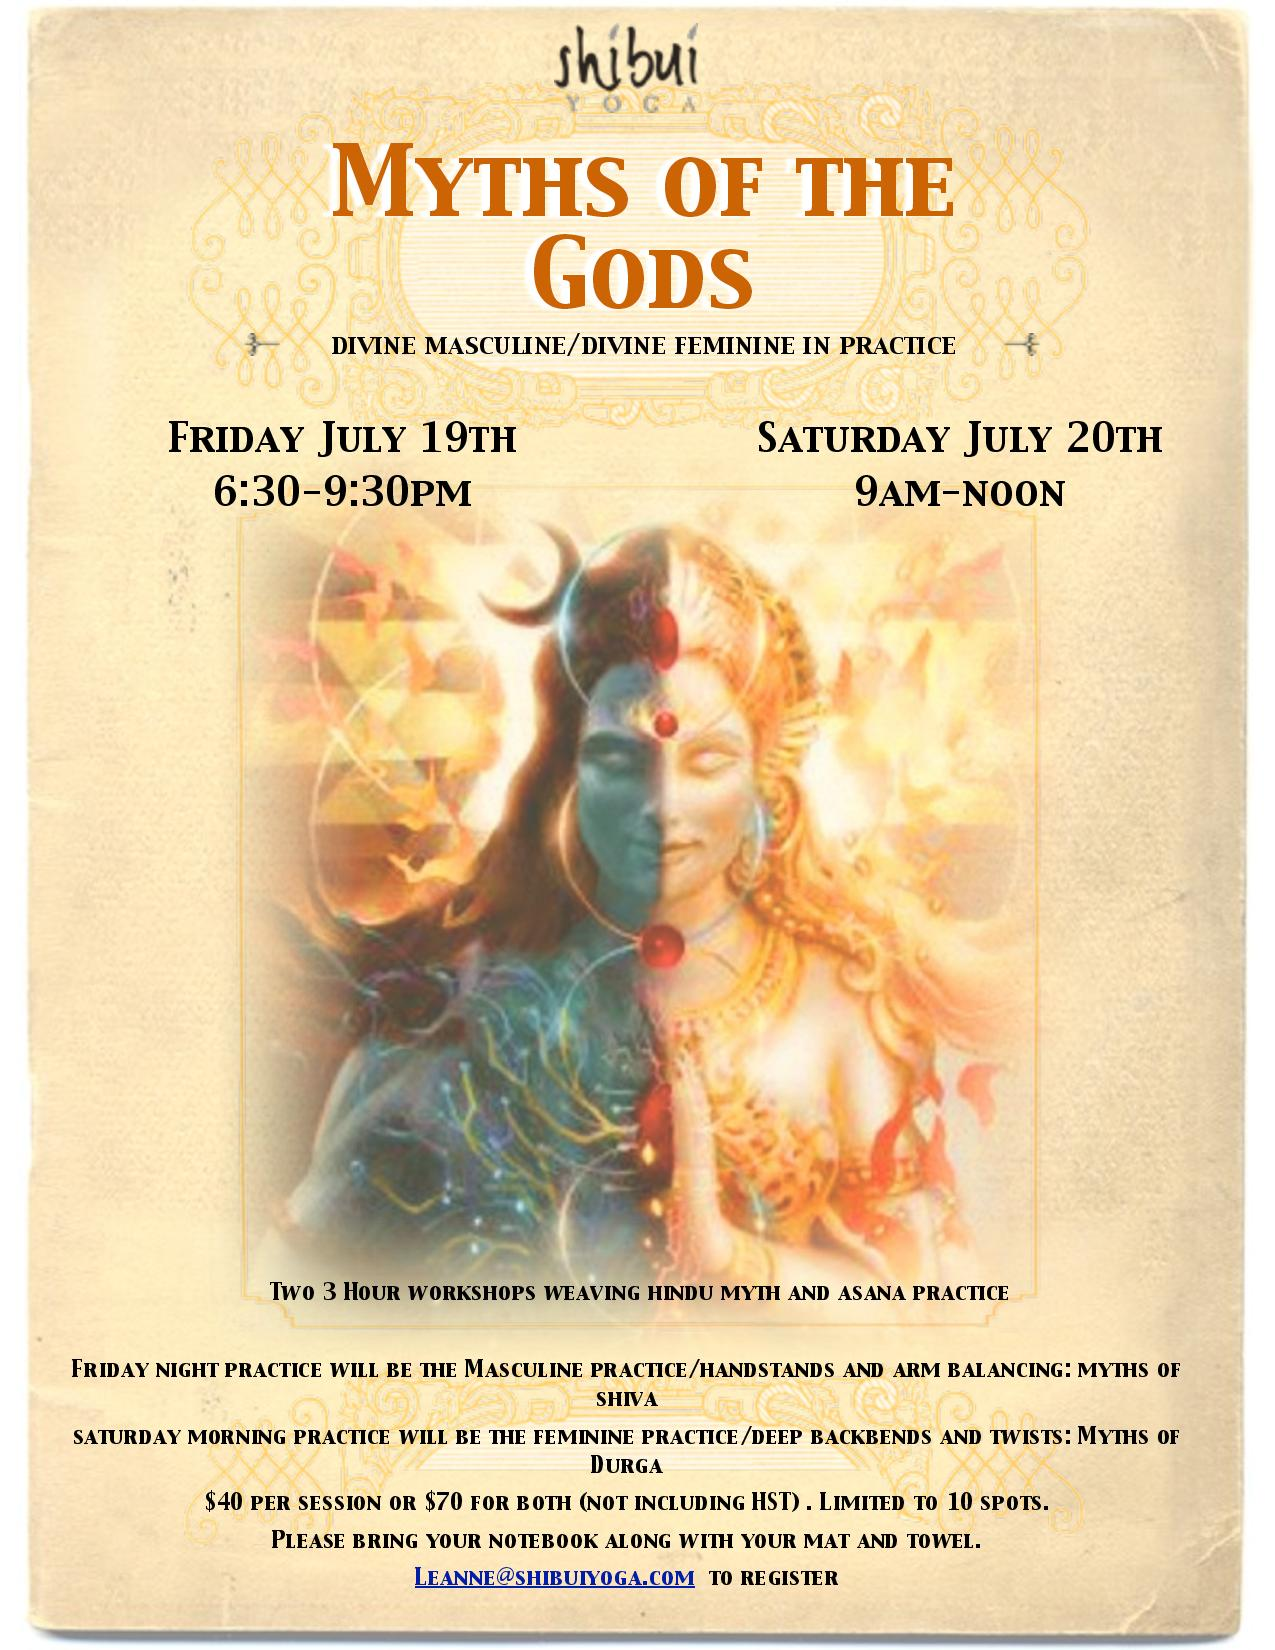 Myths of the Gods